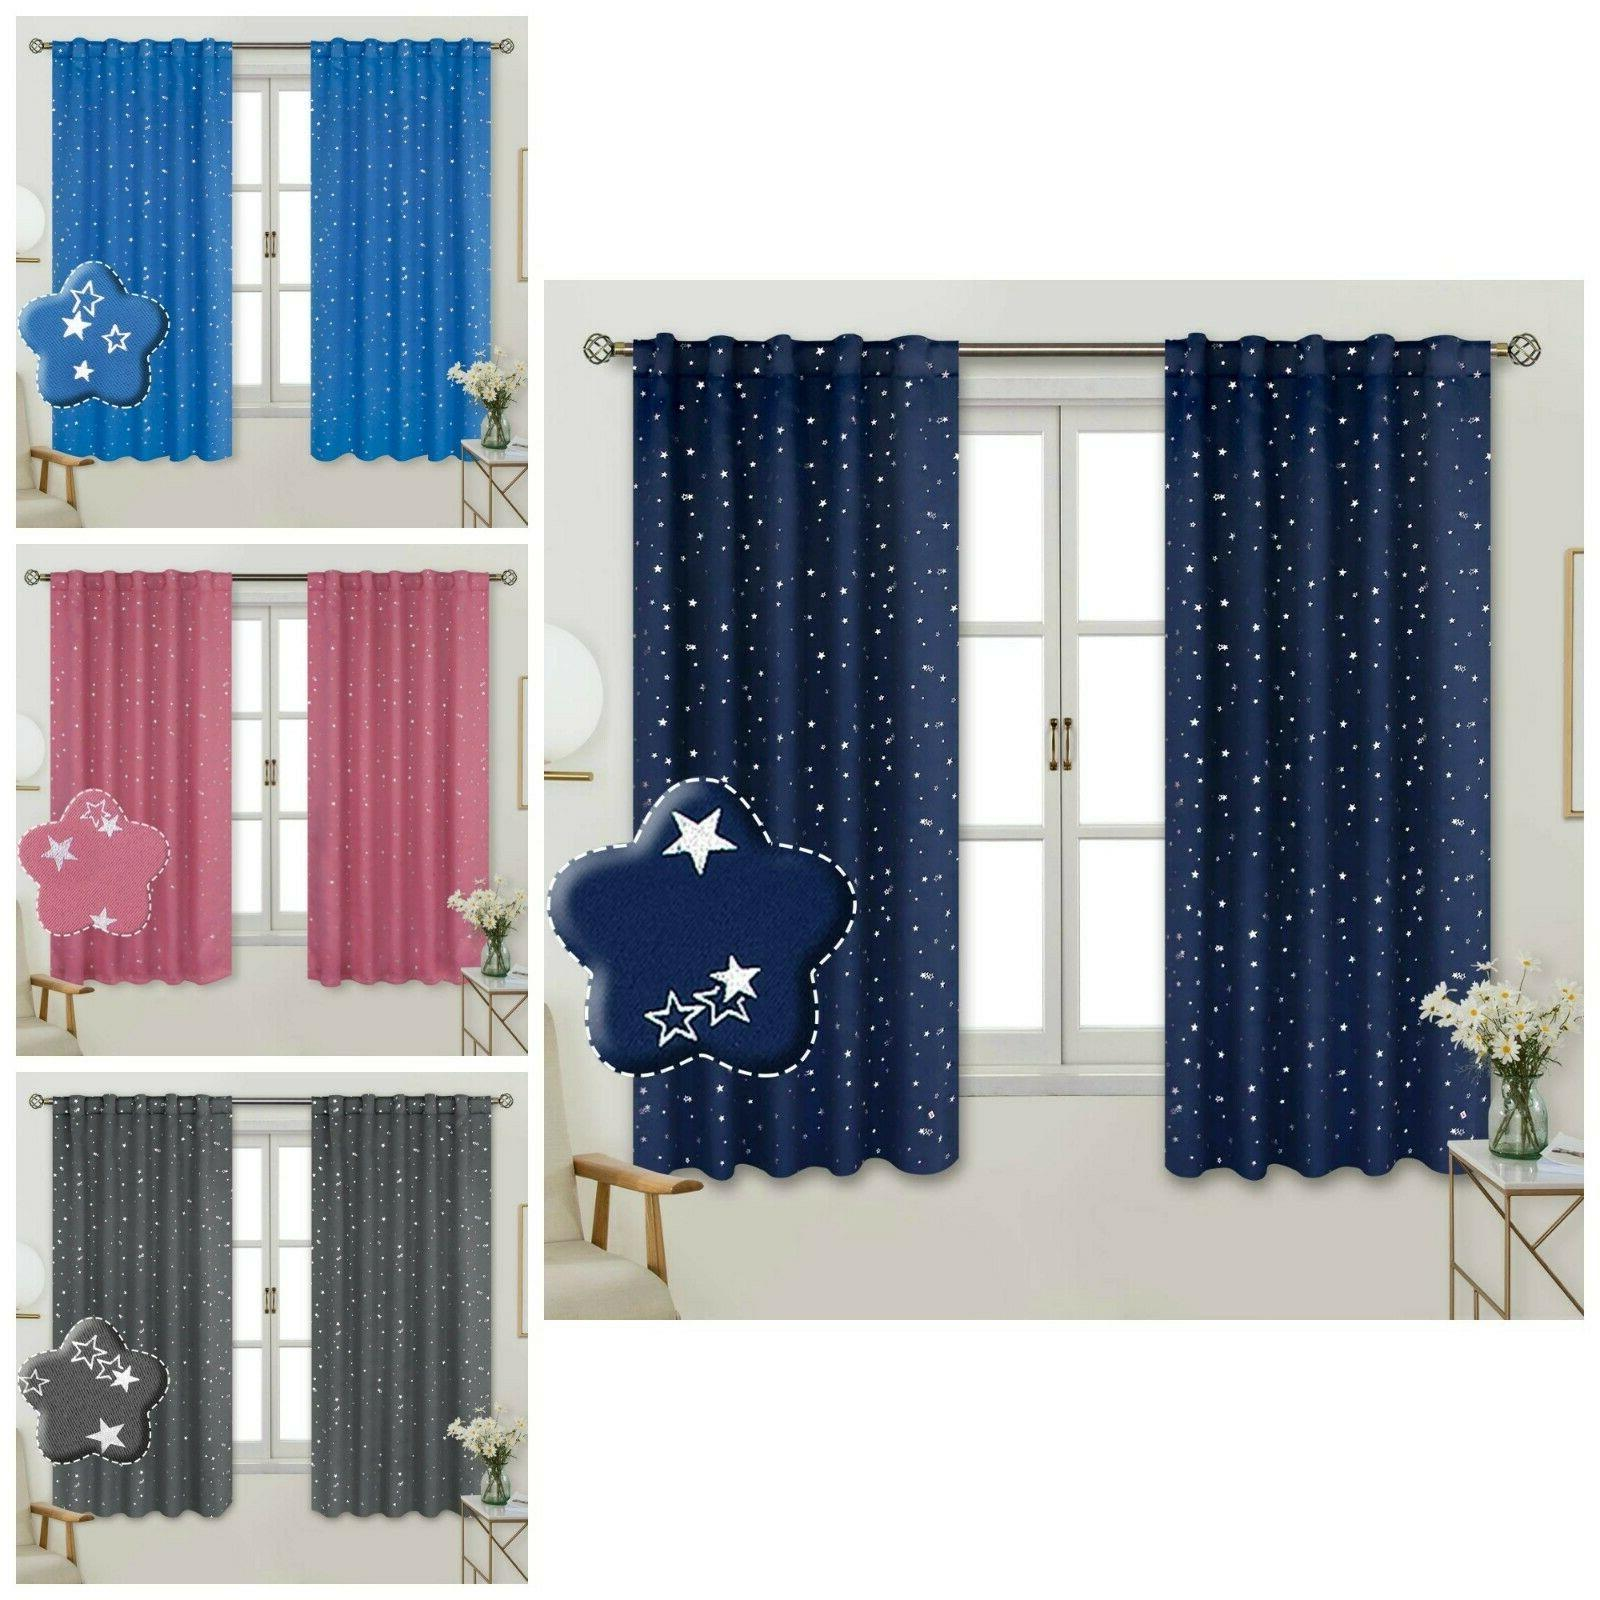 Insulated Curtains For Kids Bedroom Sparkly Star Blackout Ro